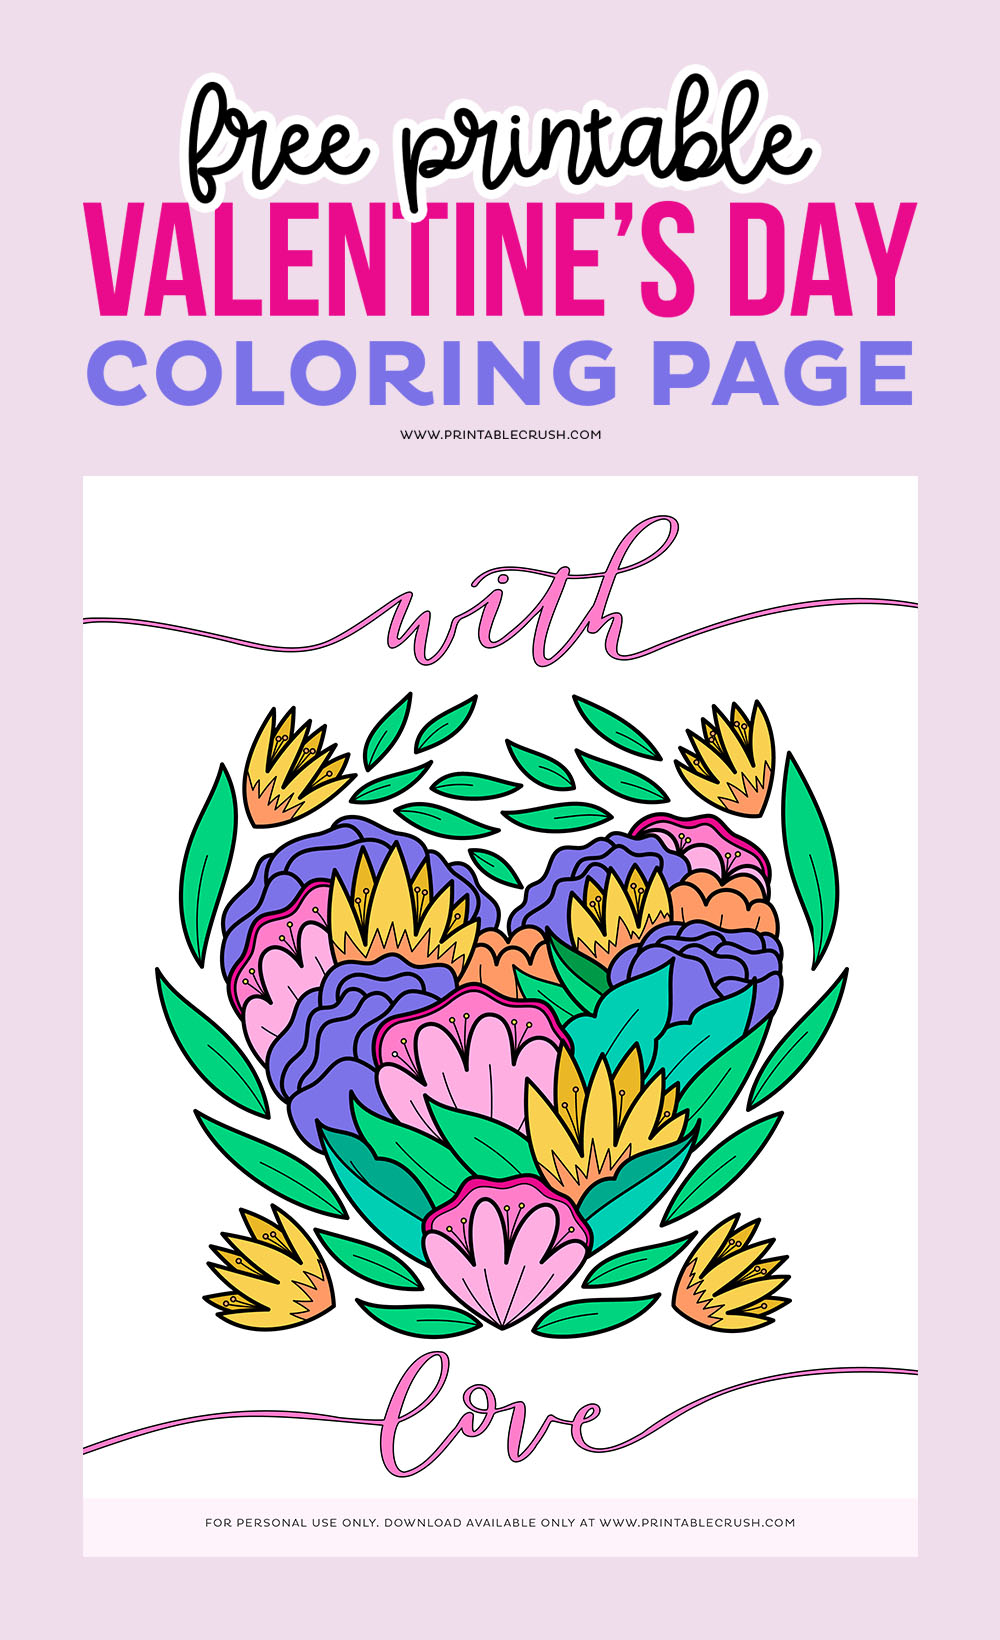 Instantly download this FREE Valentine's Day Coloring Page for a fun and relaxing activity. The floral heart design is perfect for all ages! via @printablecrush